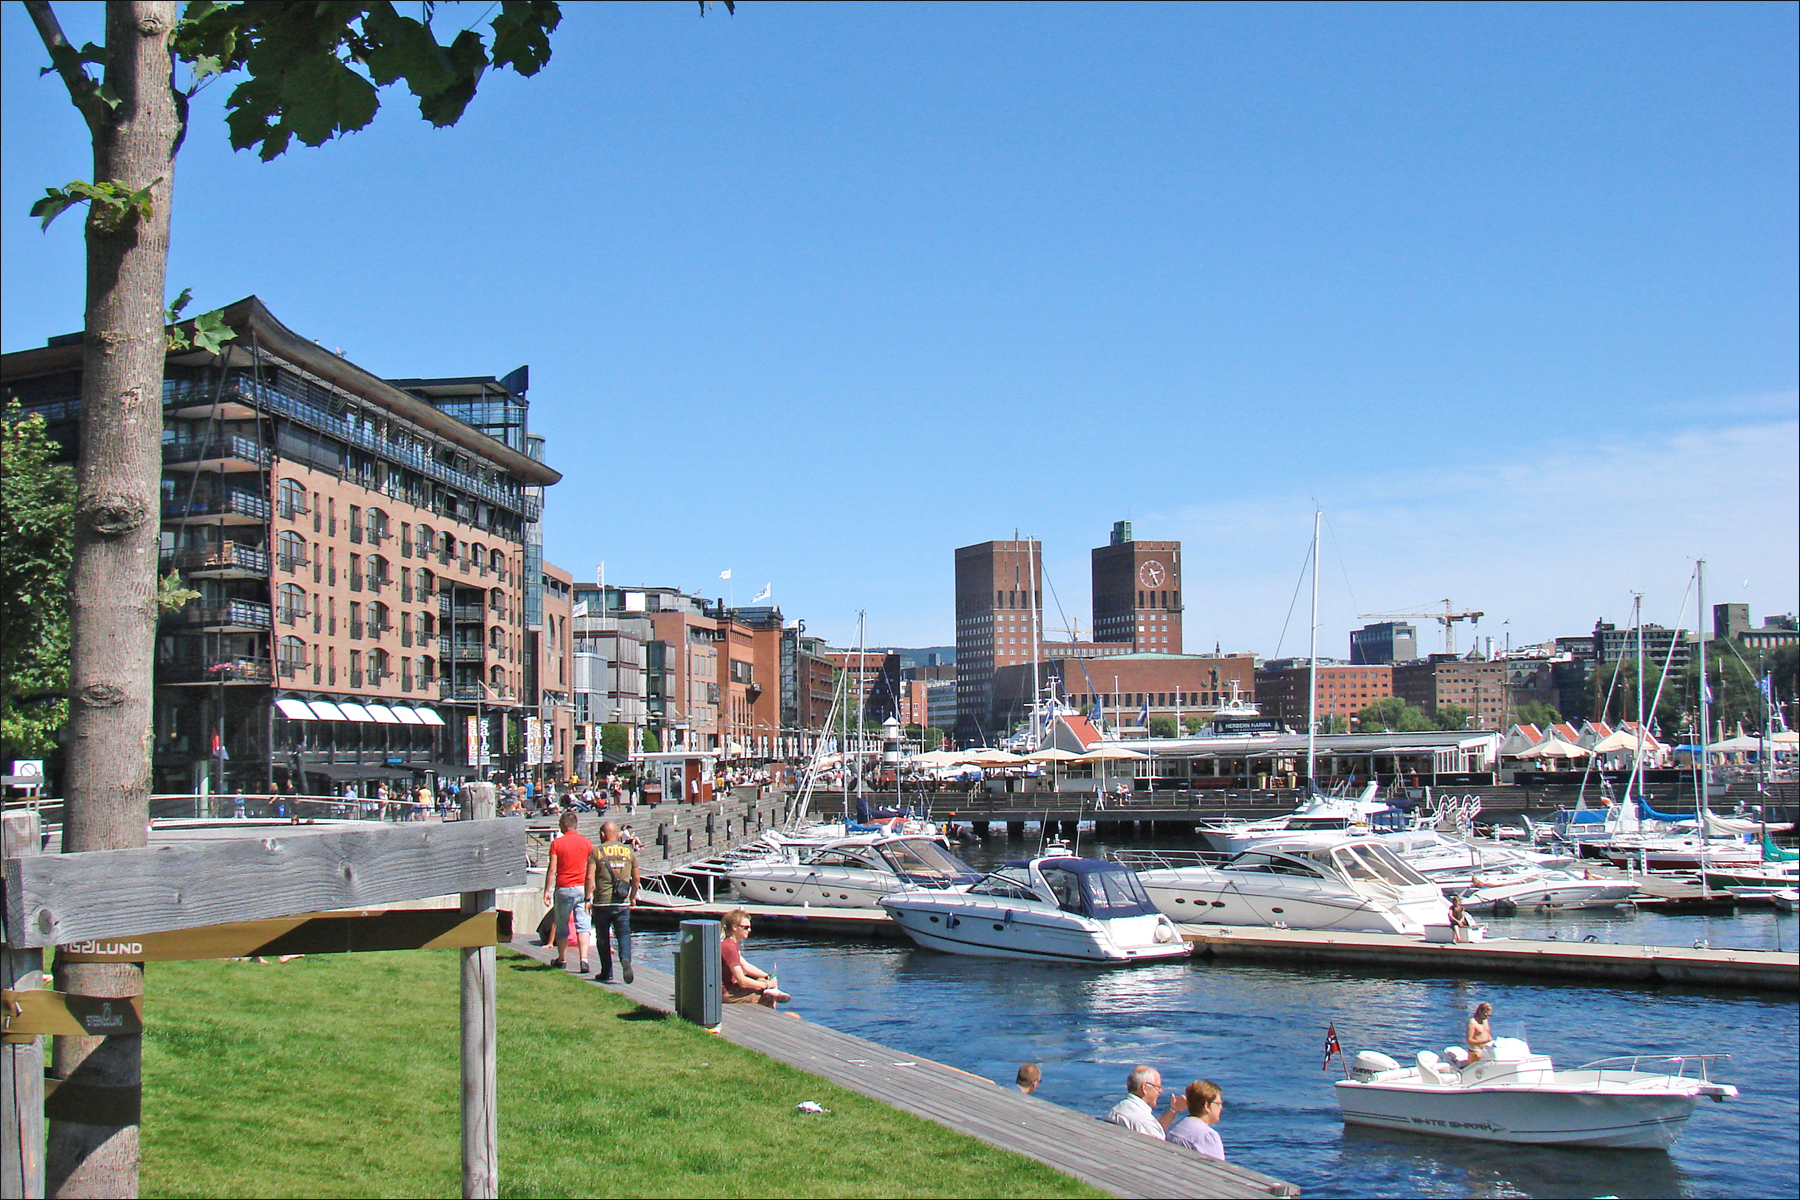 Aker Brygge: Popular Shopping Center For Tourists in Oslo